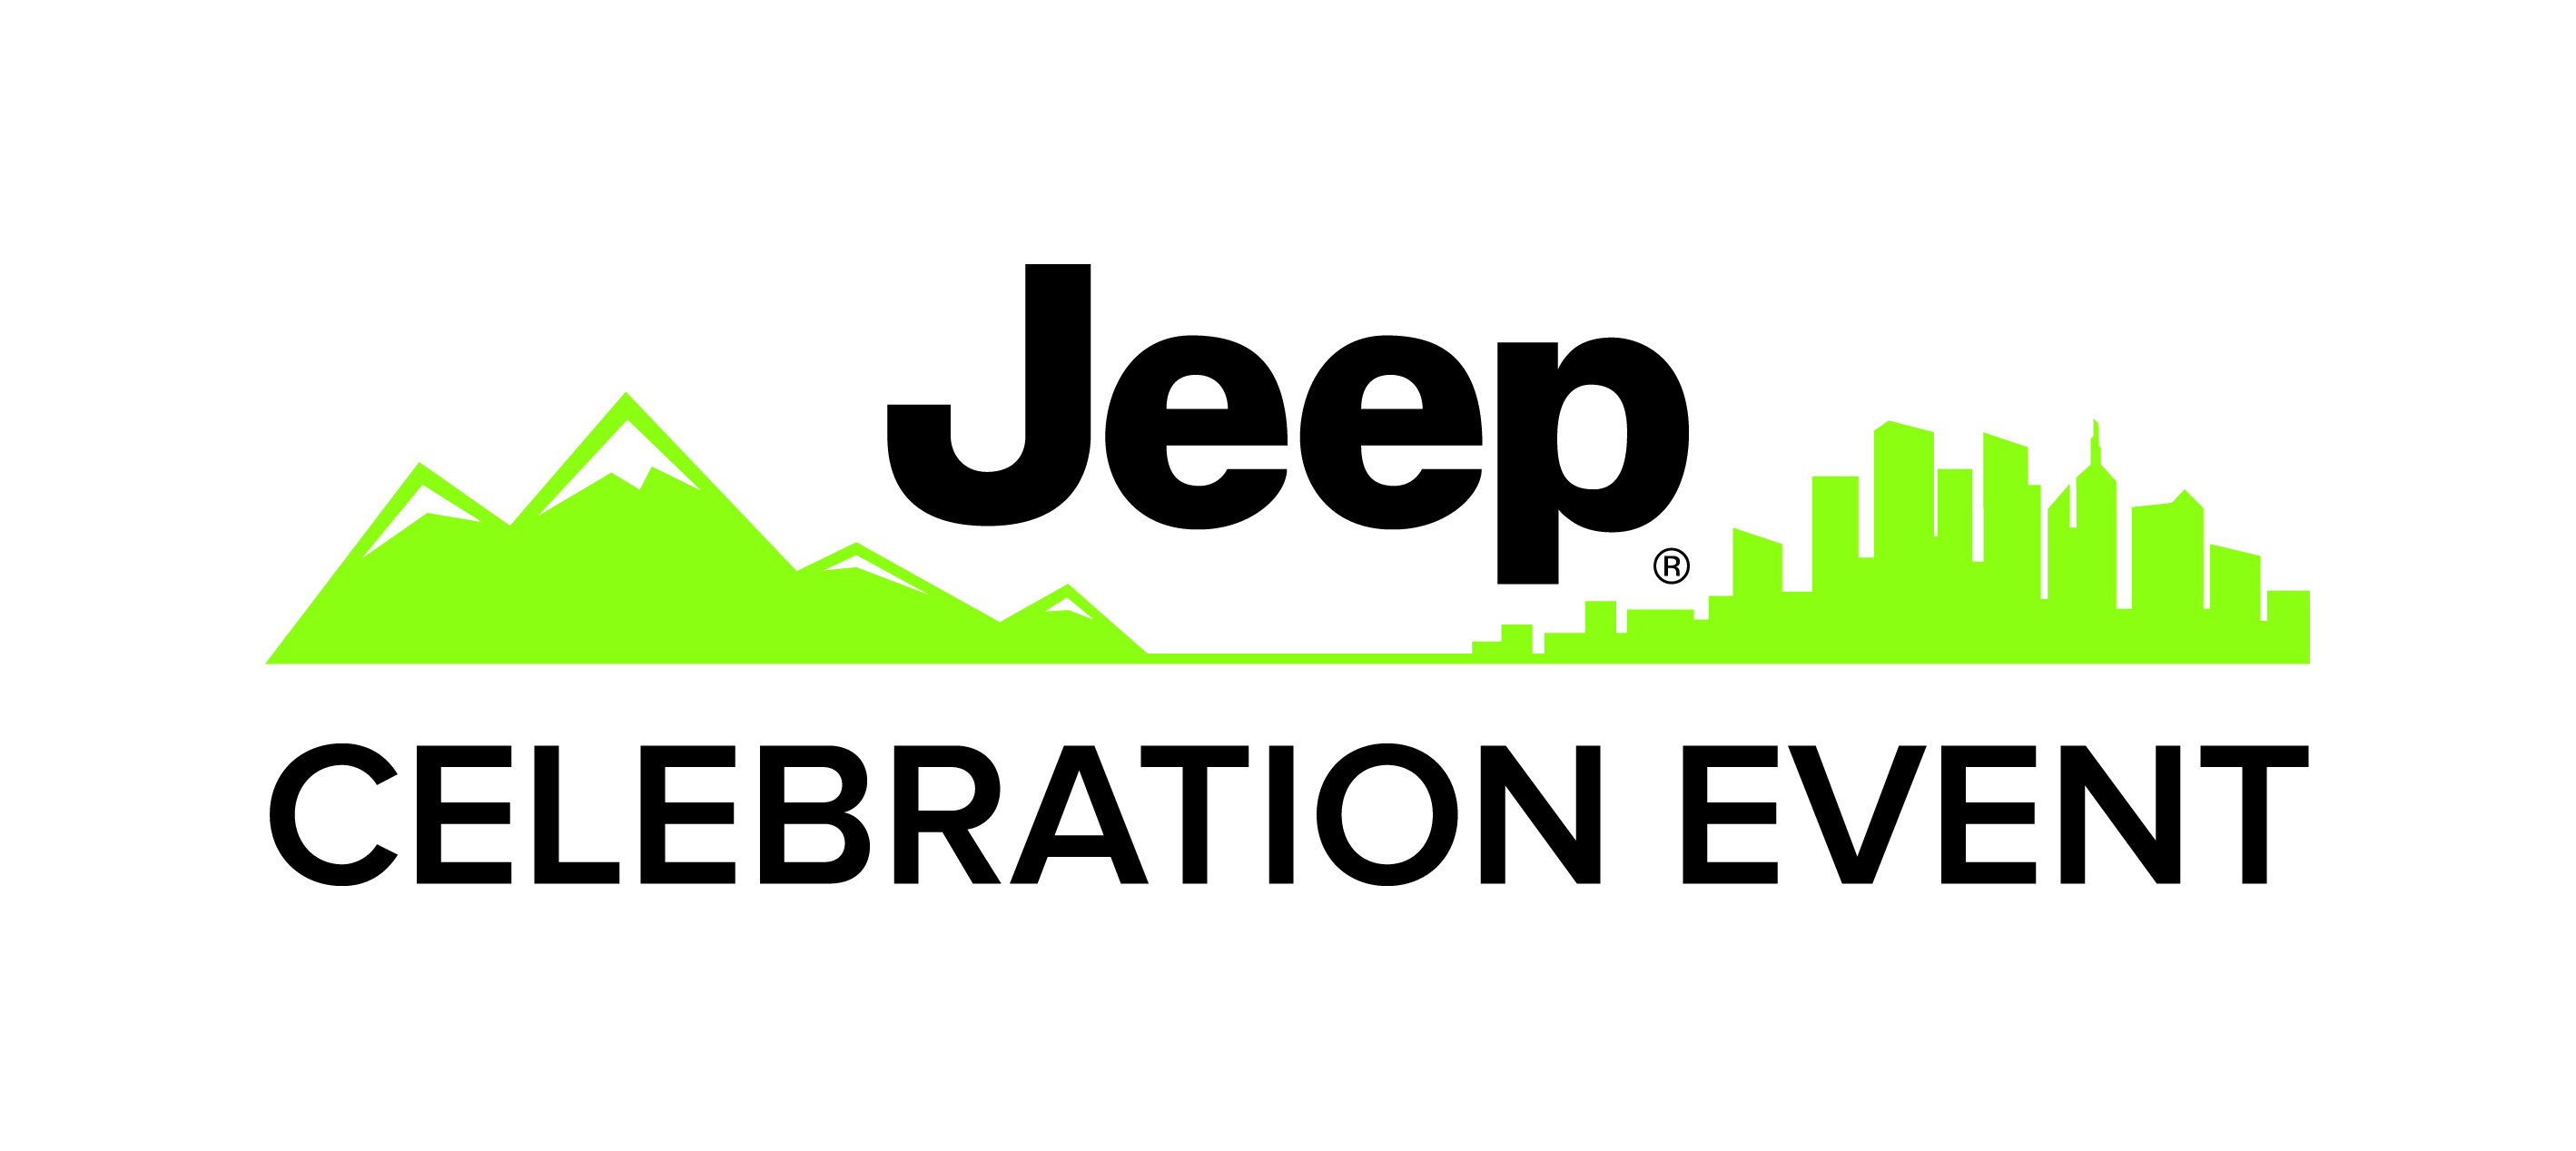 Jeep Celebration Event in Greenville, NC